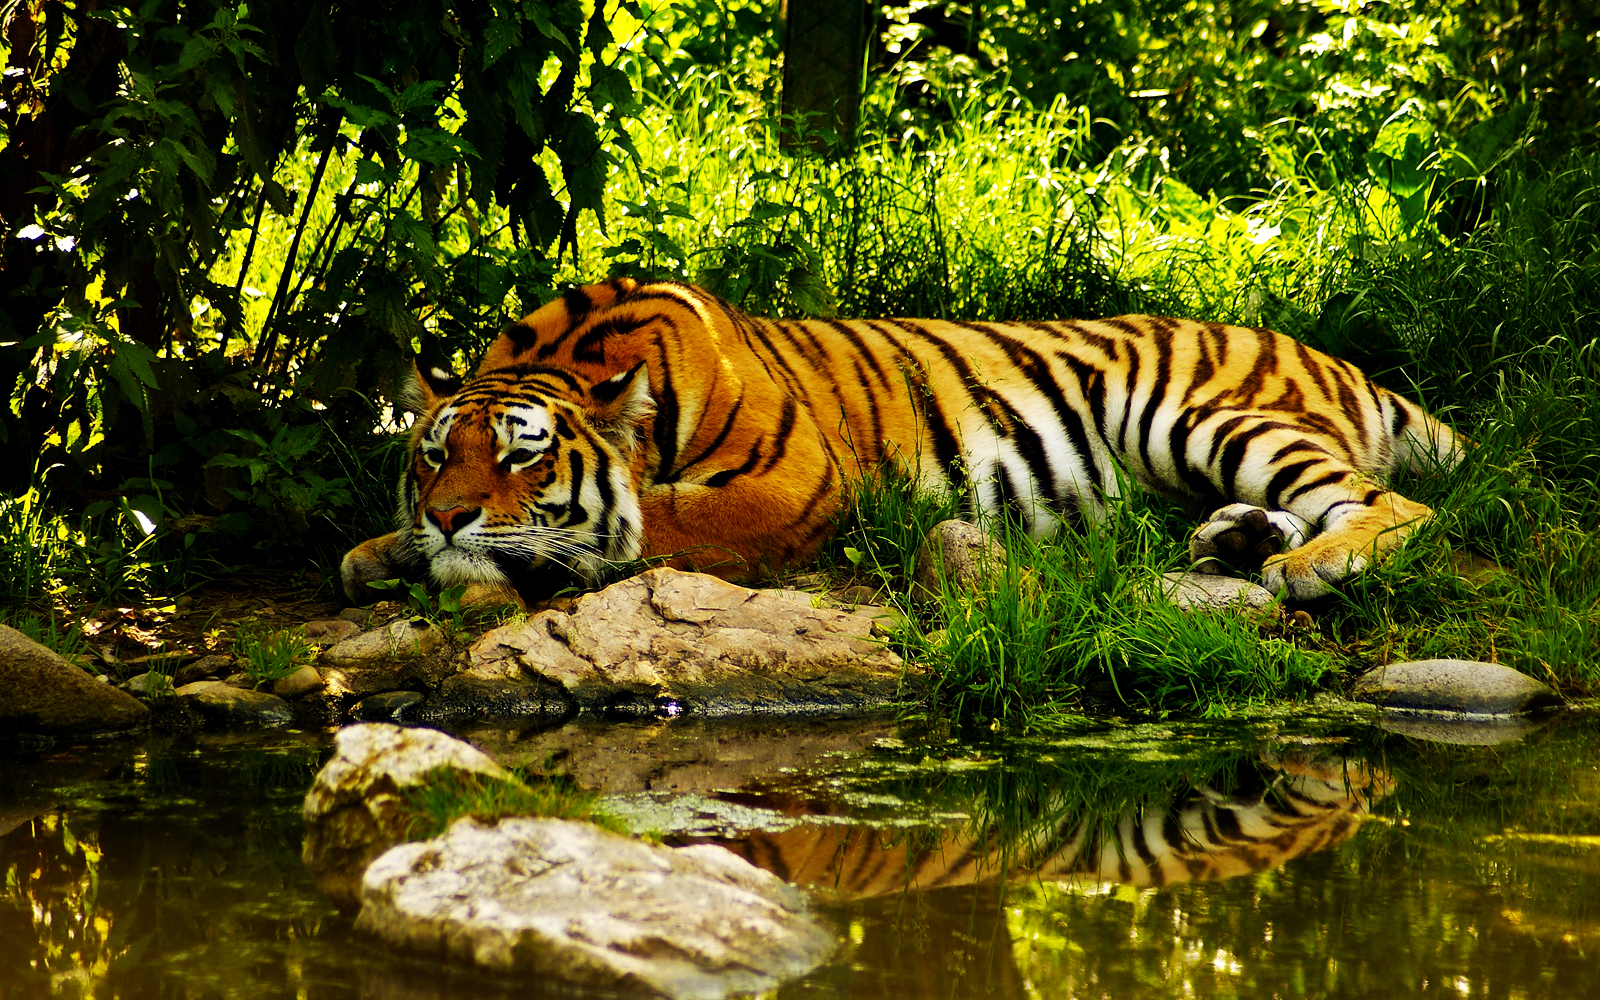 TIGER RESTING NEAR RIVER JUNGLE HD WALLPAPER VVALLPAPER